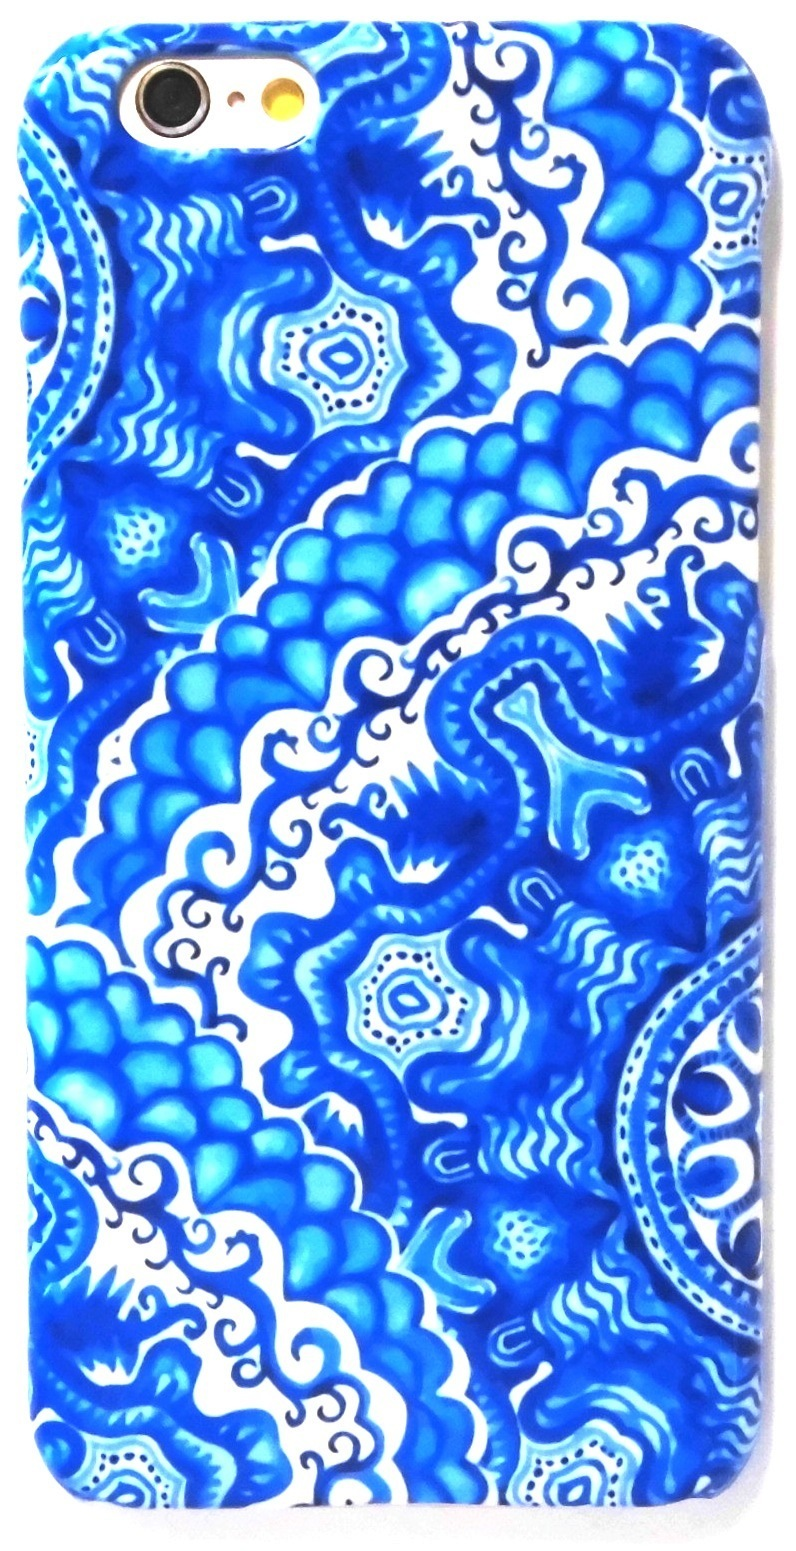 iphone 6 6s case watercolor (2)